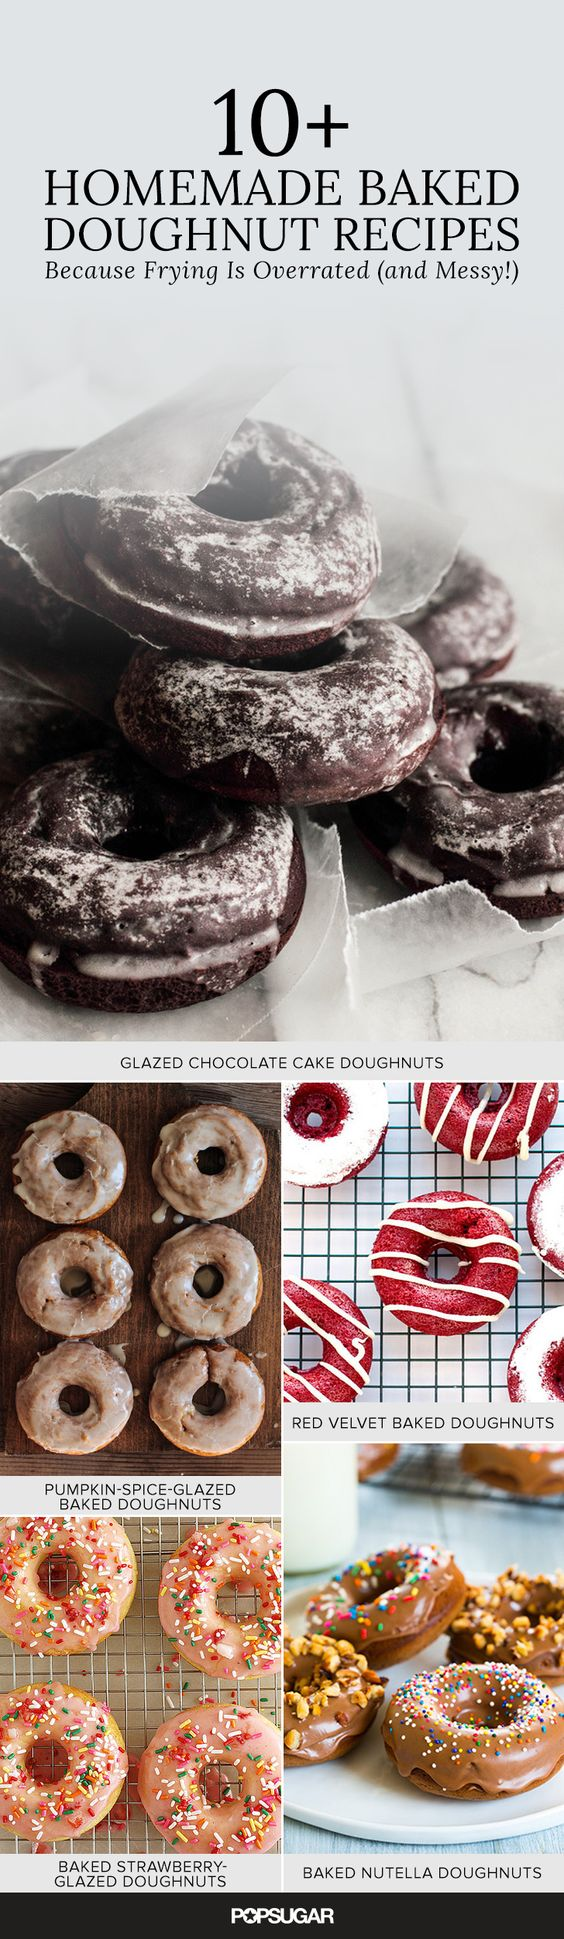 10+ Homemade Baked Doughnut Recipes (Because Frying is Overrated and Messy!) —ranging from red velvet to rhubarb poppyseed, these easy recipes satisfy